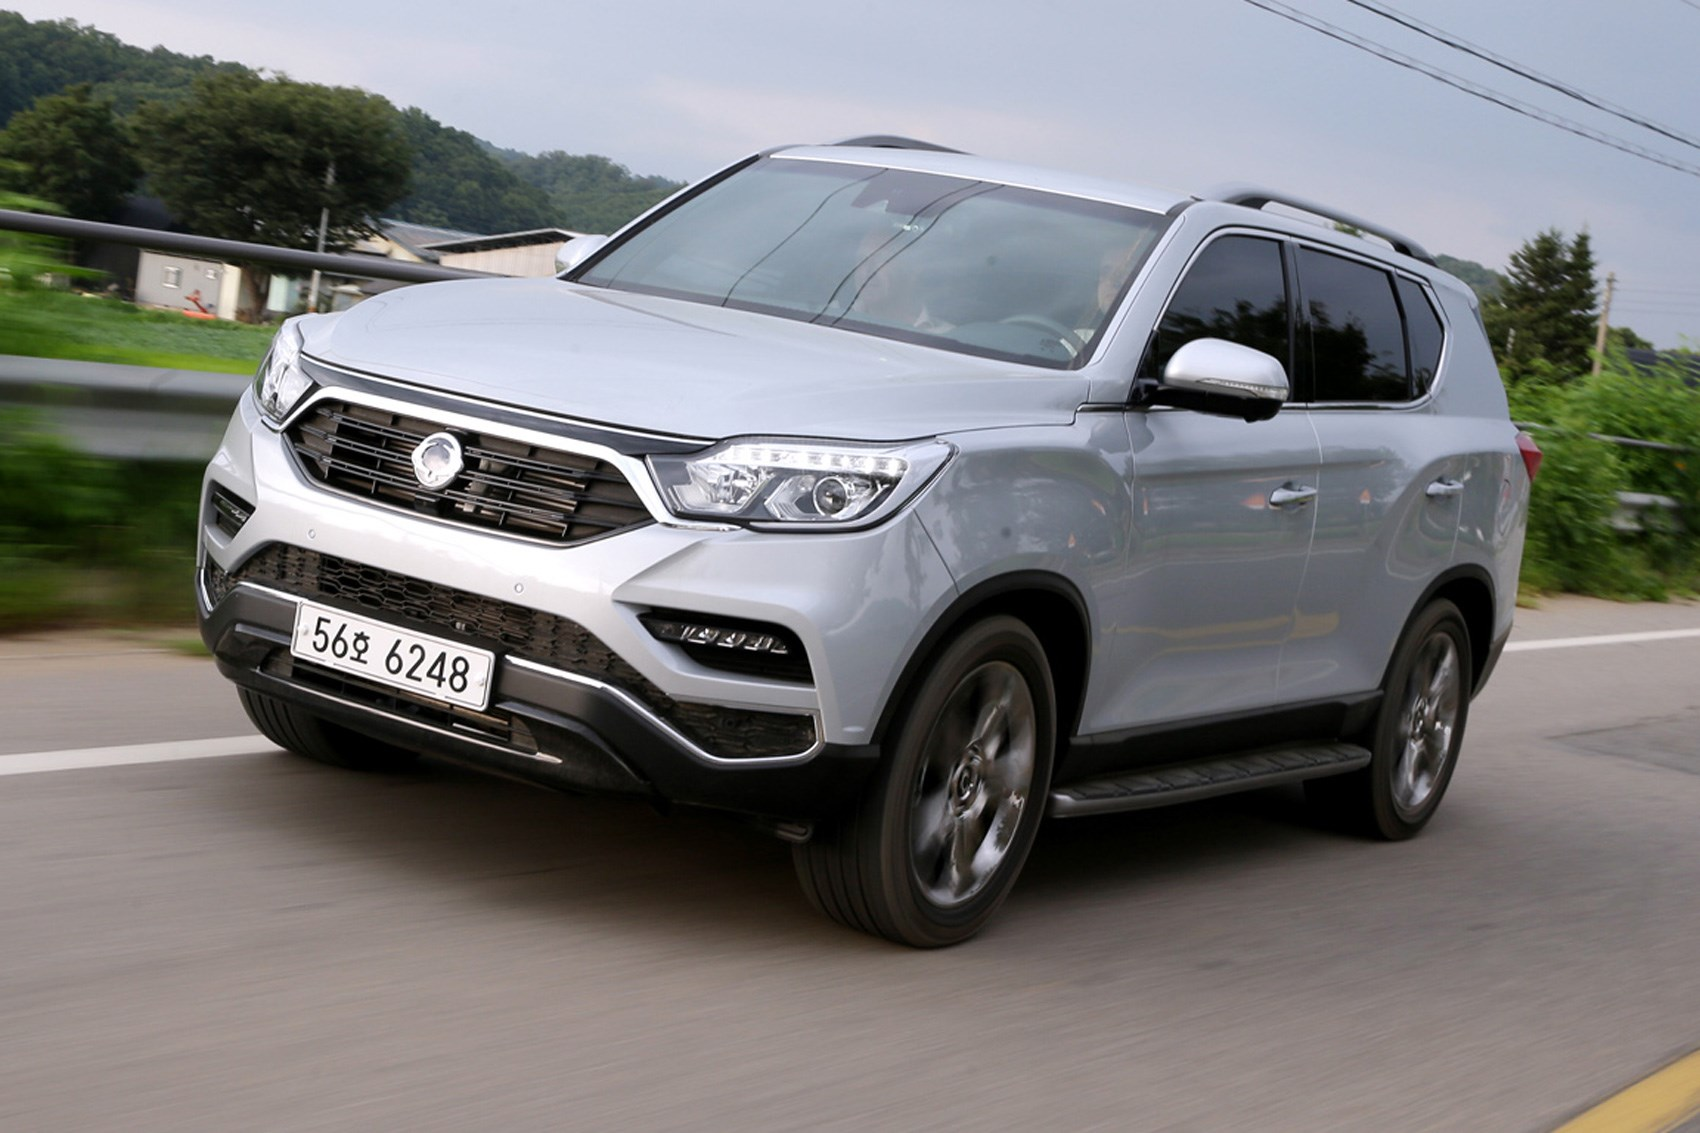 Chevrolet Lease Deals >> SsangYong Rexton SUV (2017) review | CAR Magazine